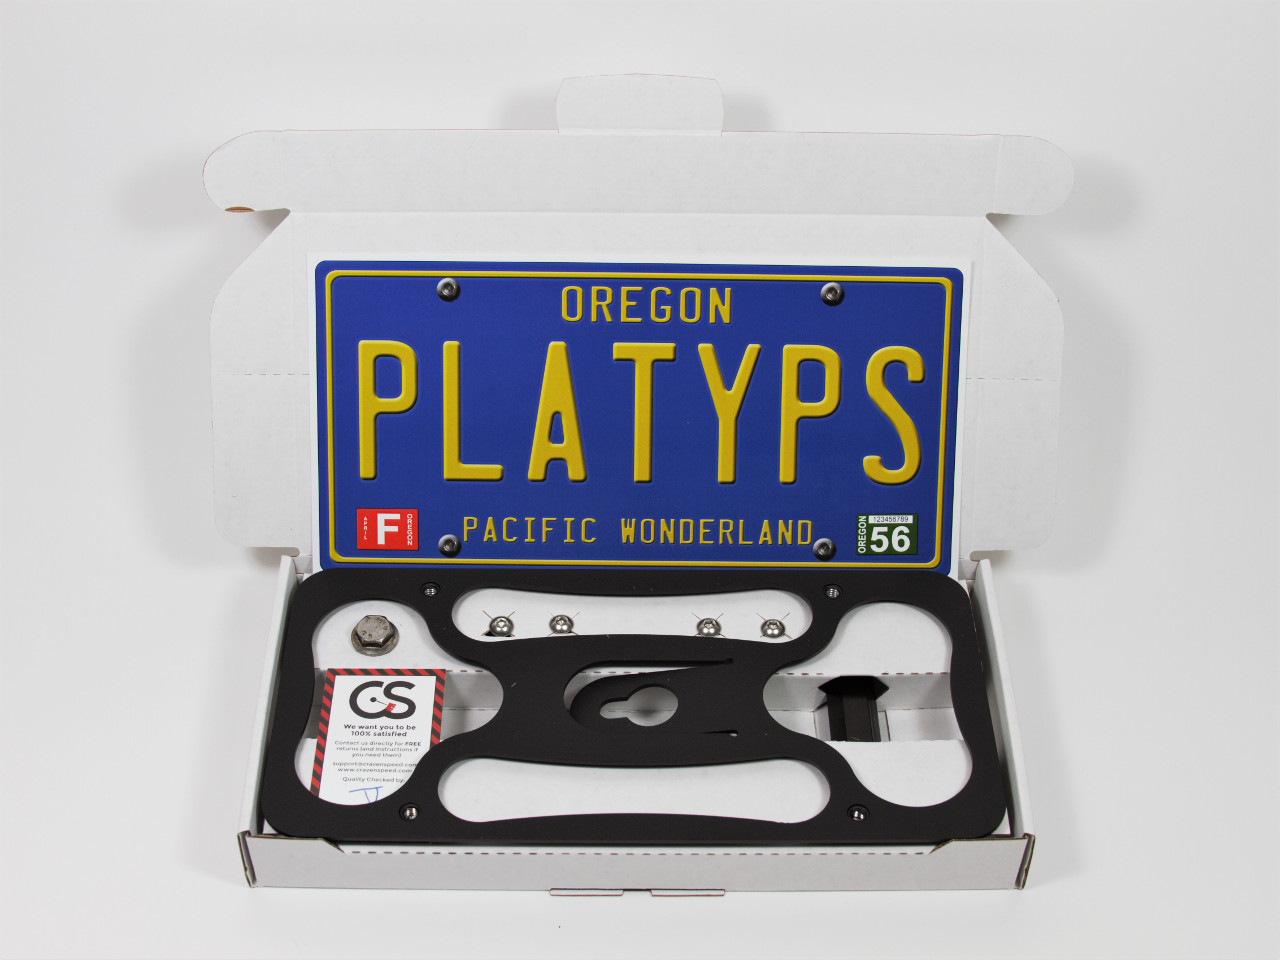 Assembled kit of The Platypus License Plate Mount for 2019-2020 Kia Forte